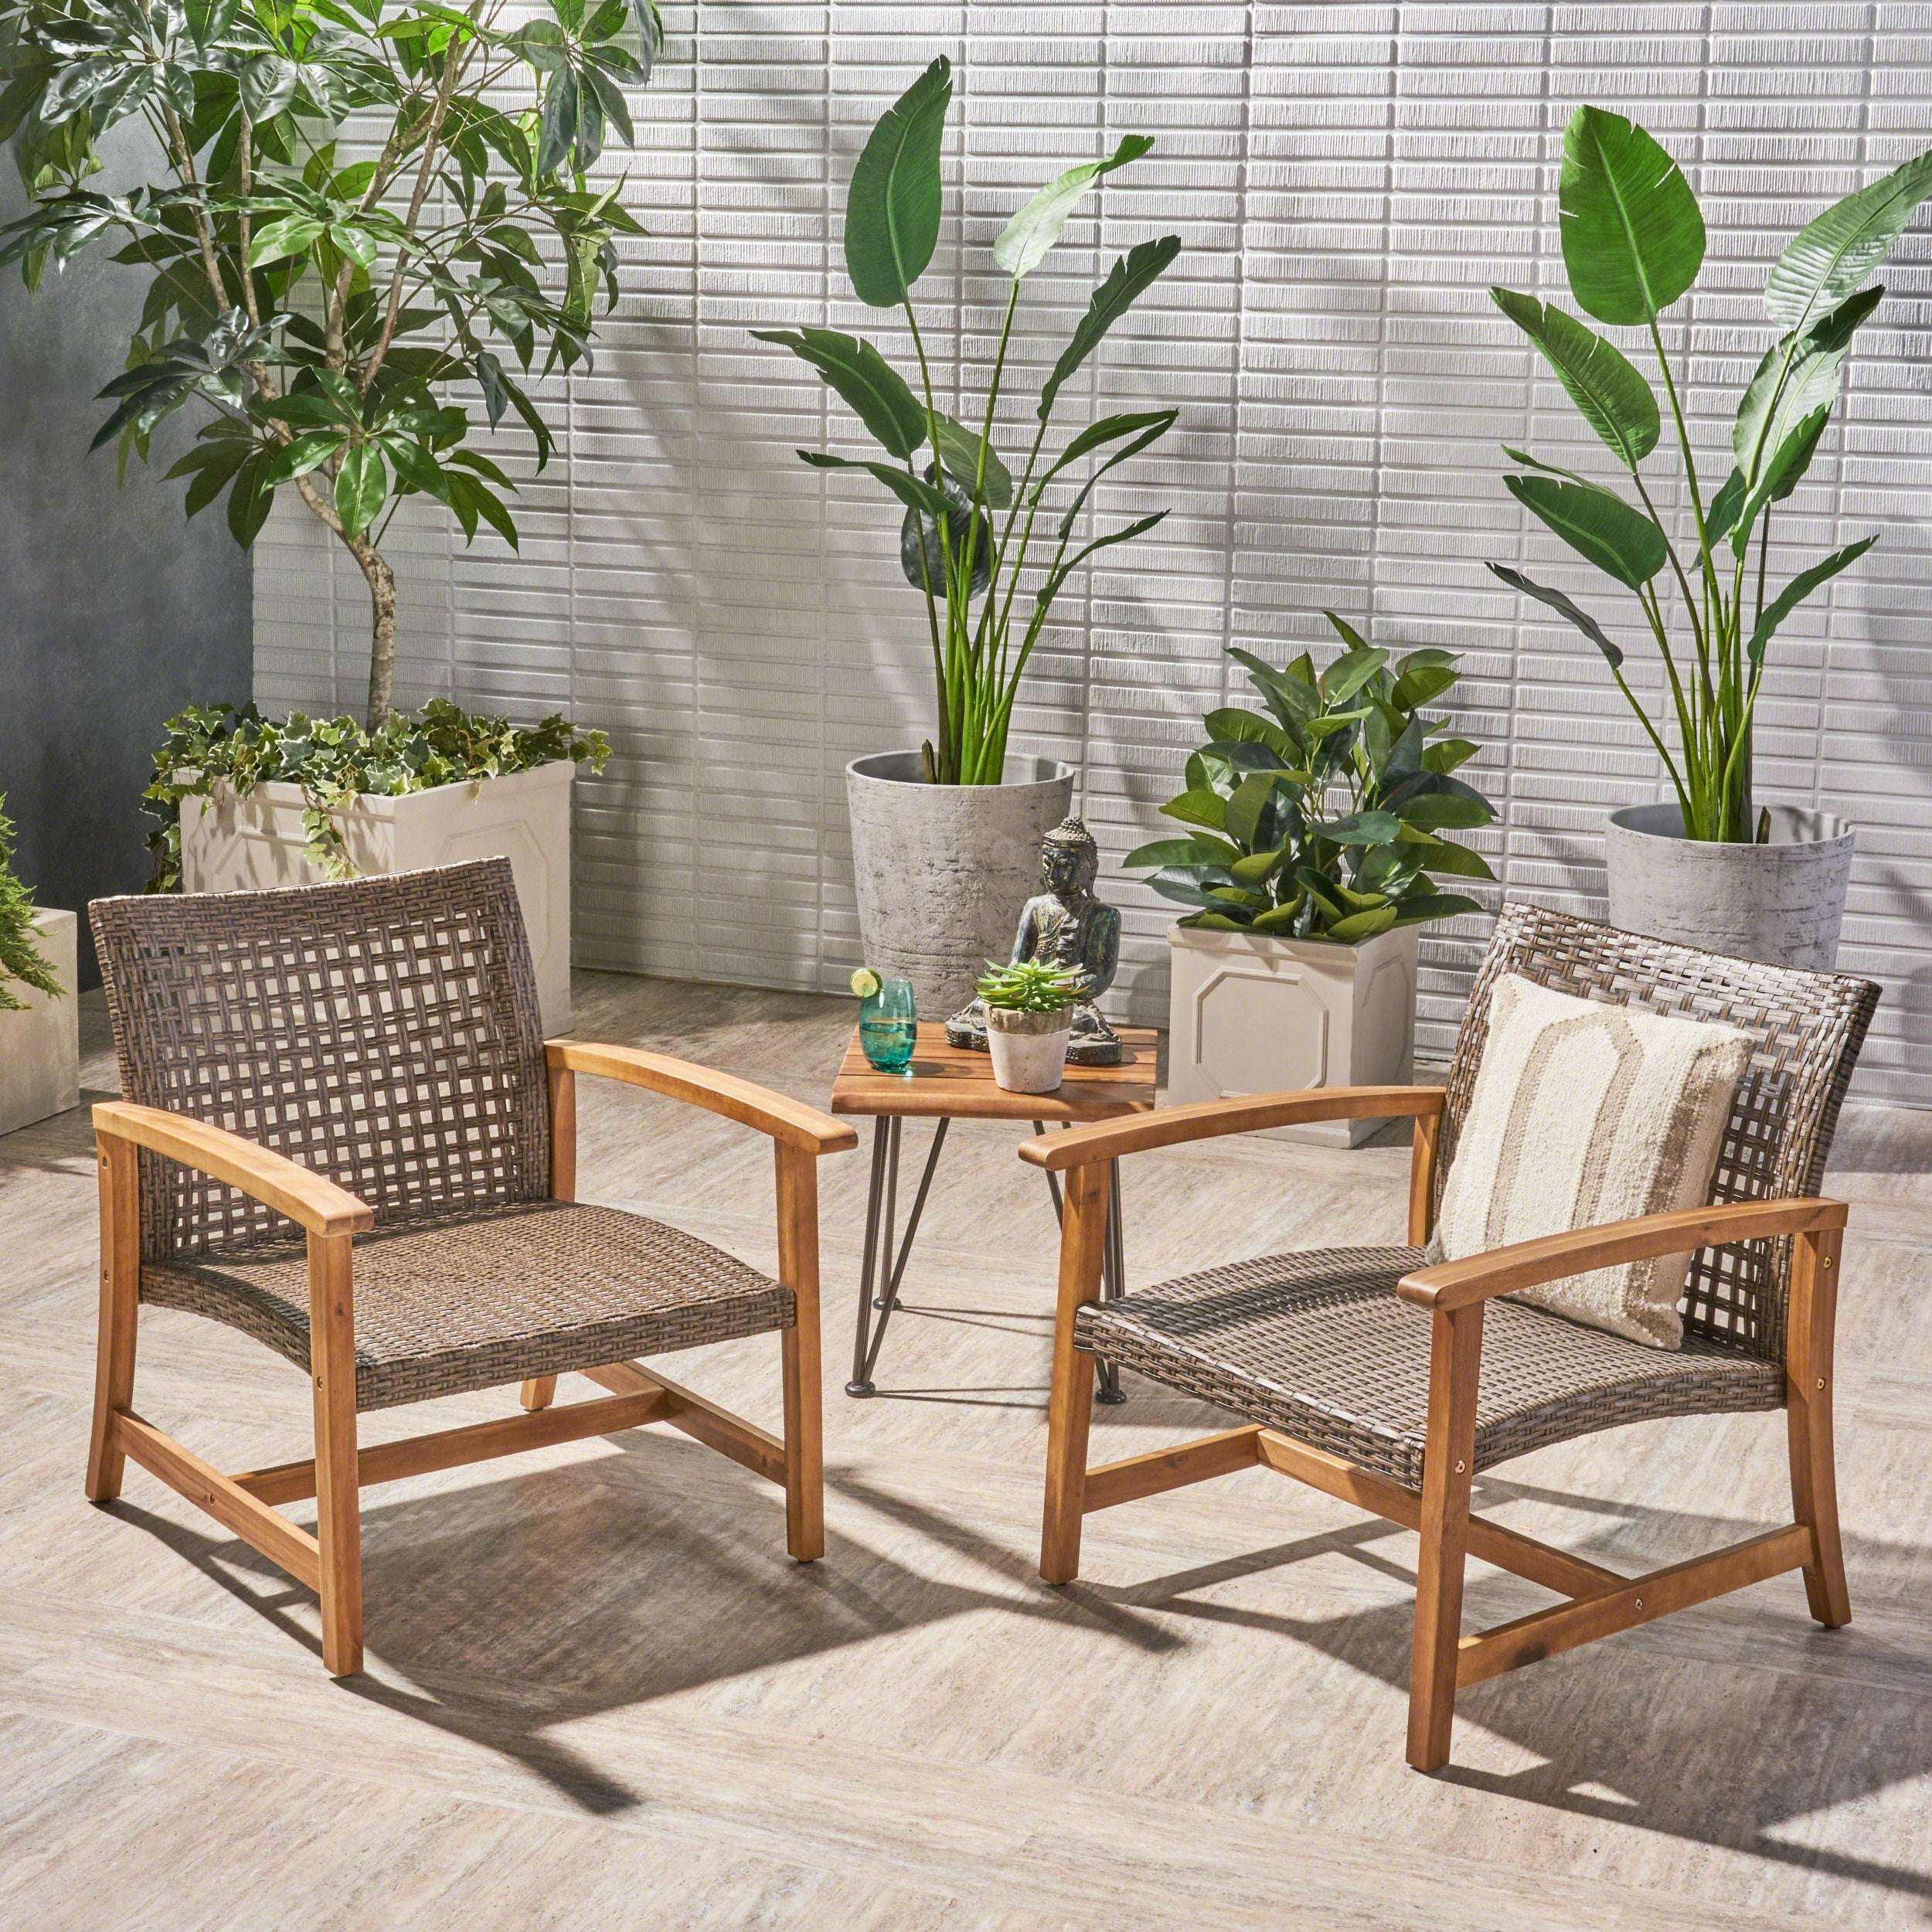 Hampton Outdoor Mid Century Wicker Club Chair Set Of 2 By Christopher Knight Home Overstock 16983327 Grey Mixed Black